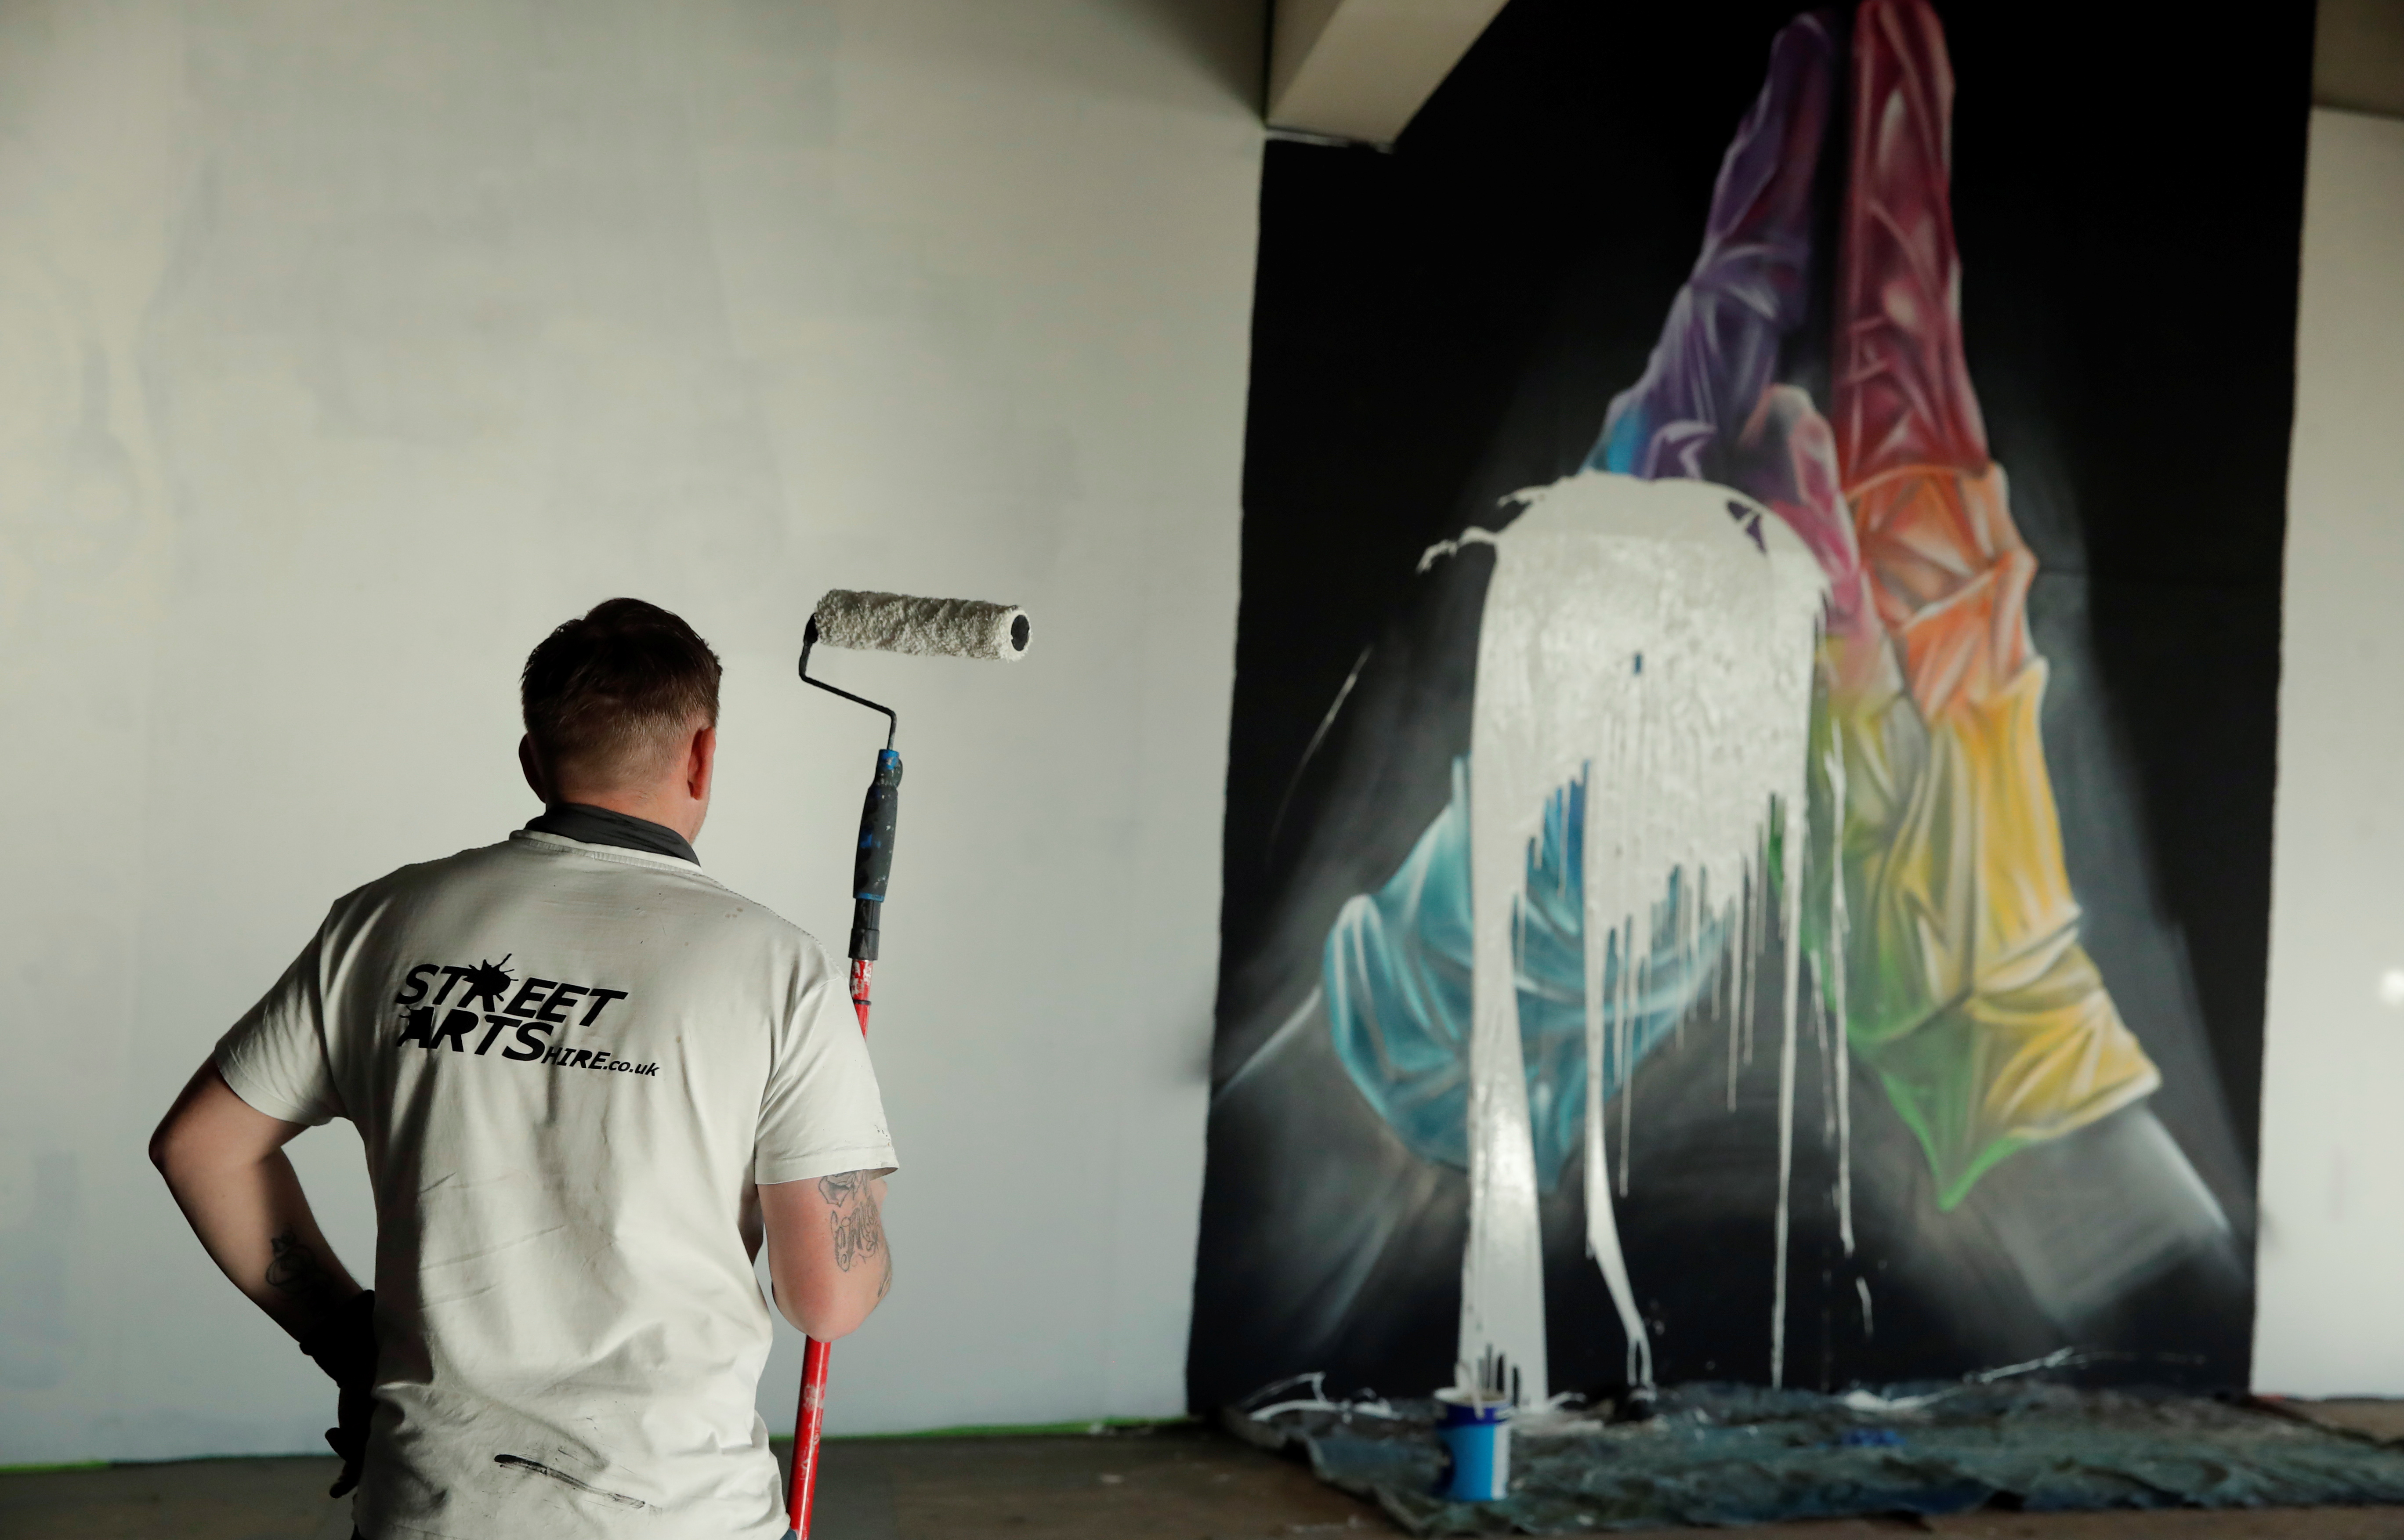 Street artist Nathan Murdoch looks at the artwork he destroyed as he creates a piece of crypto art to be auctioned with proceeds donated to the NHS in Peterborough, Britain, April 15, 2021. REUTERS/Andrew Couldridge